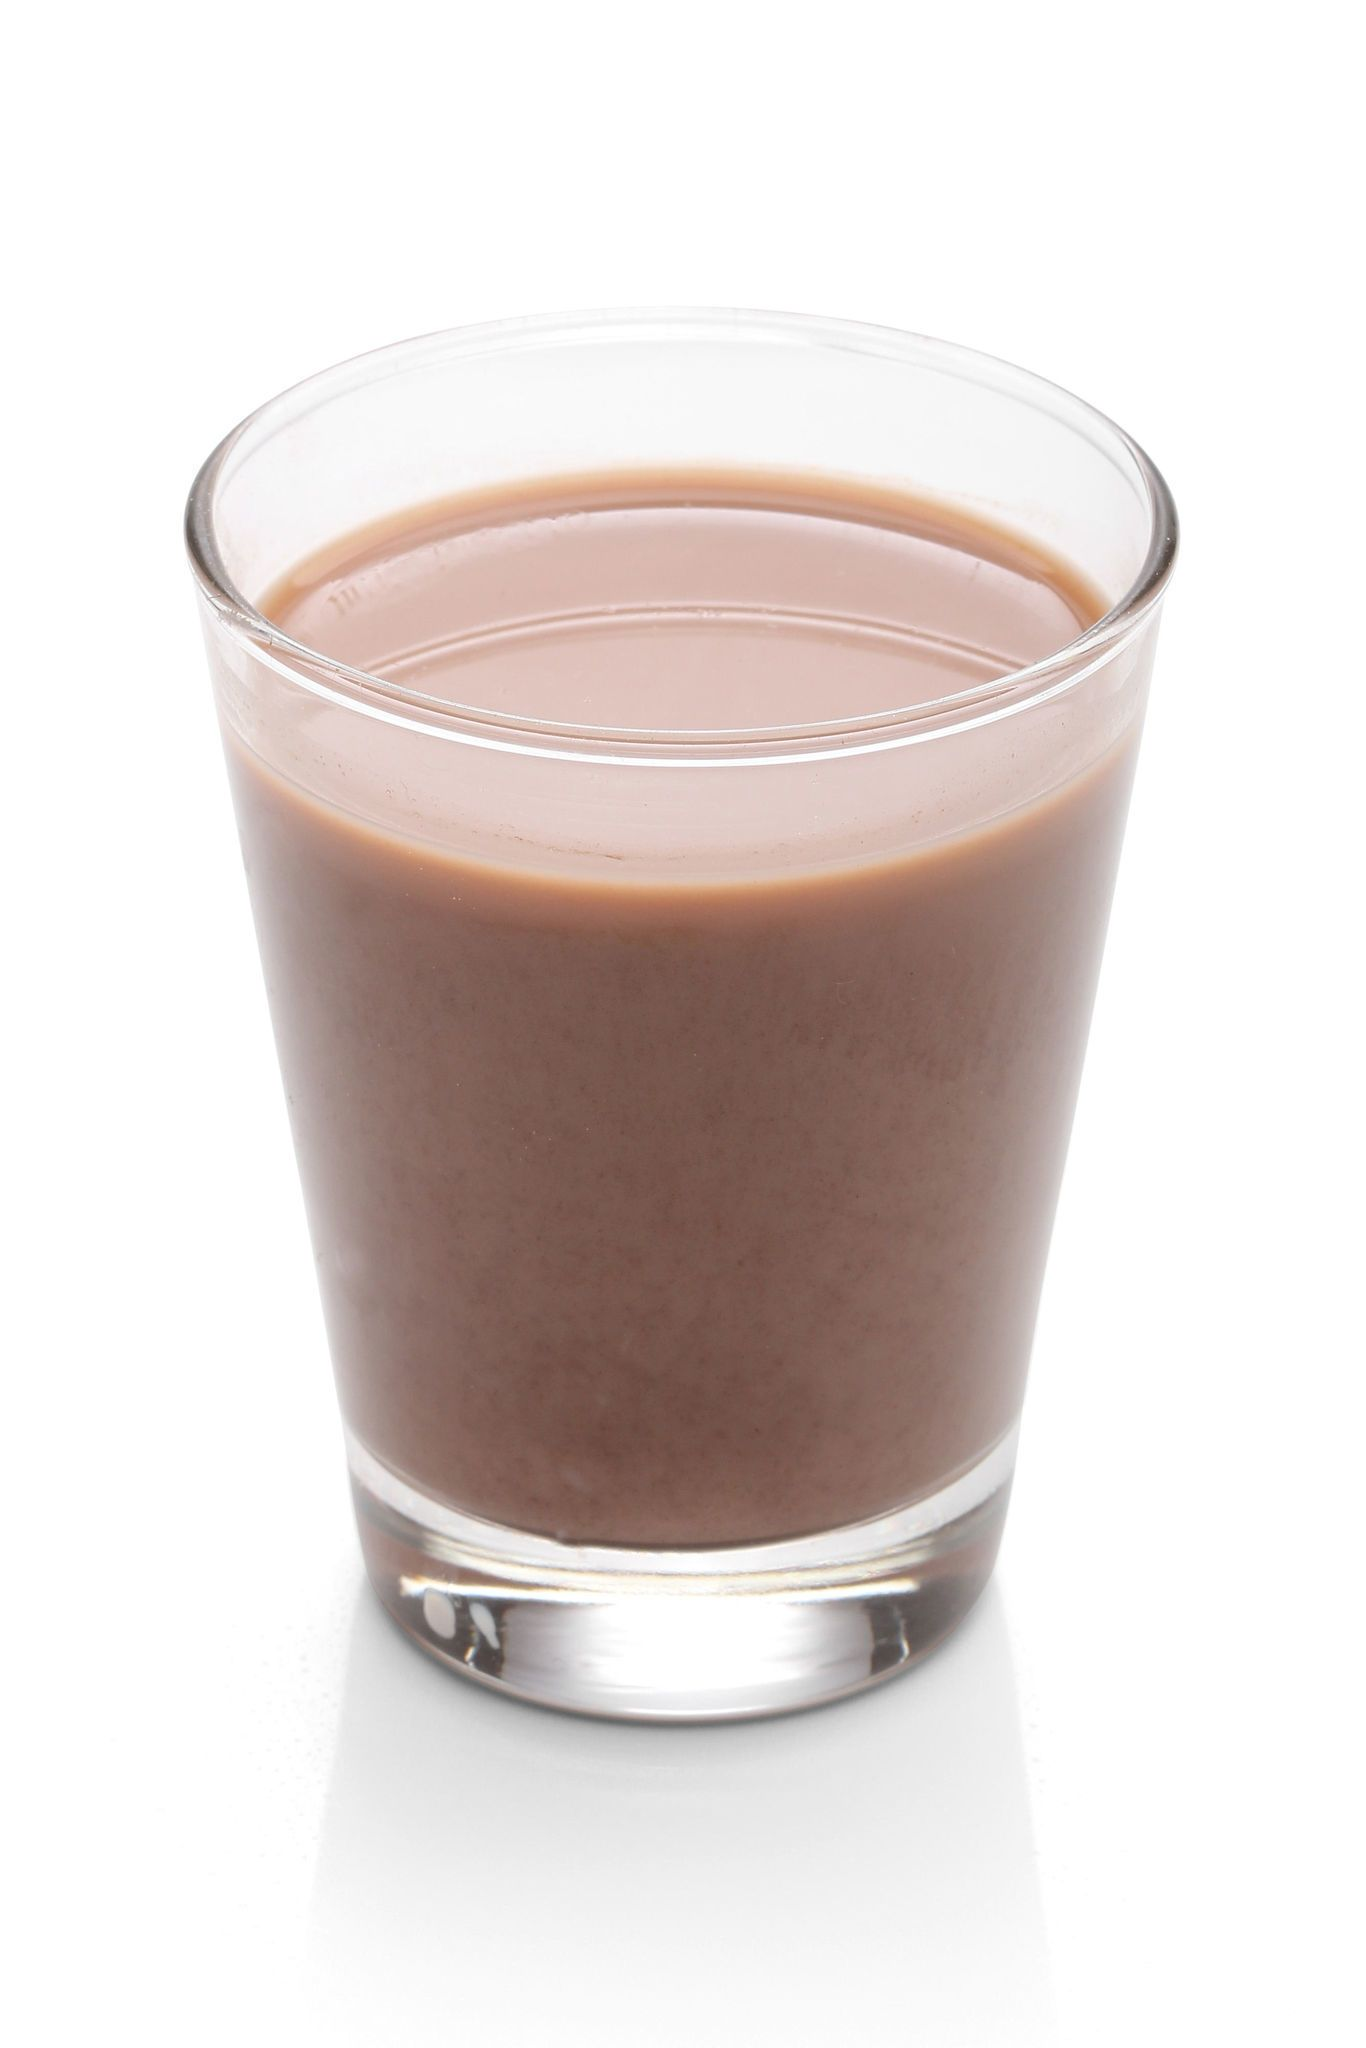 Pin By Random Person On The Internet On Chocolate Milk Chocolate Milk Uht Milk Milk